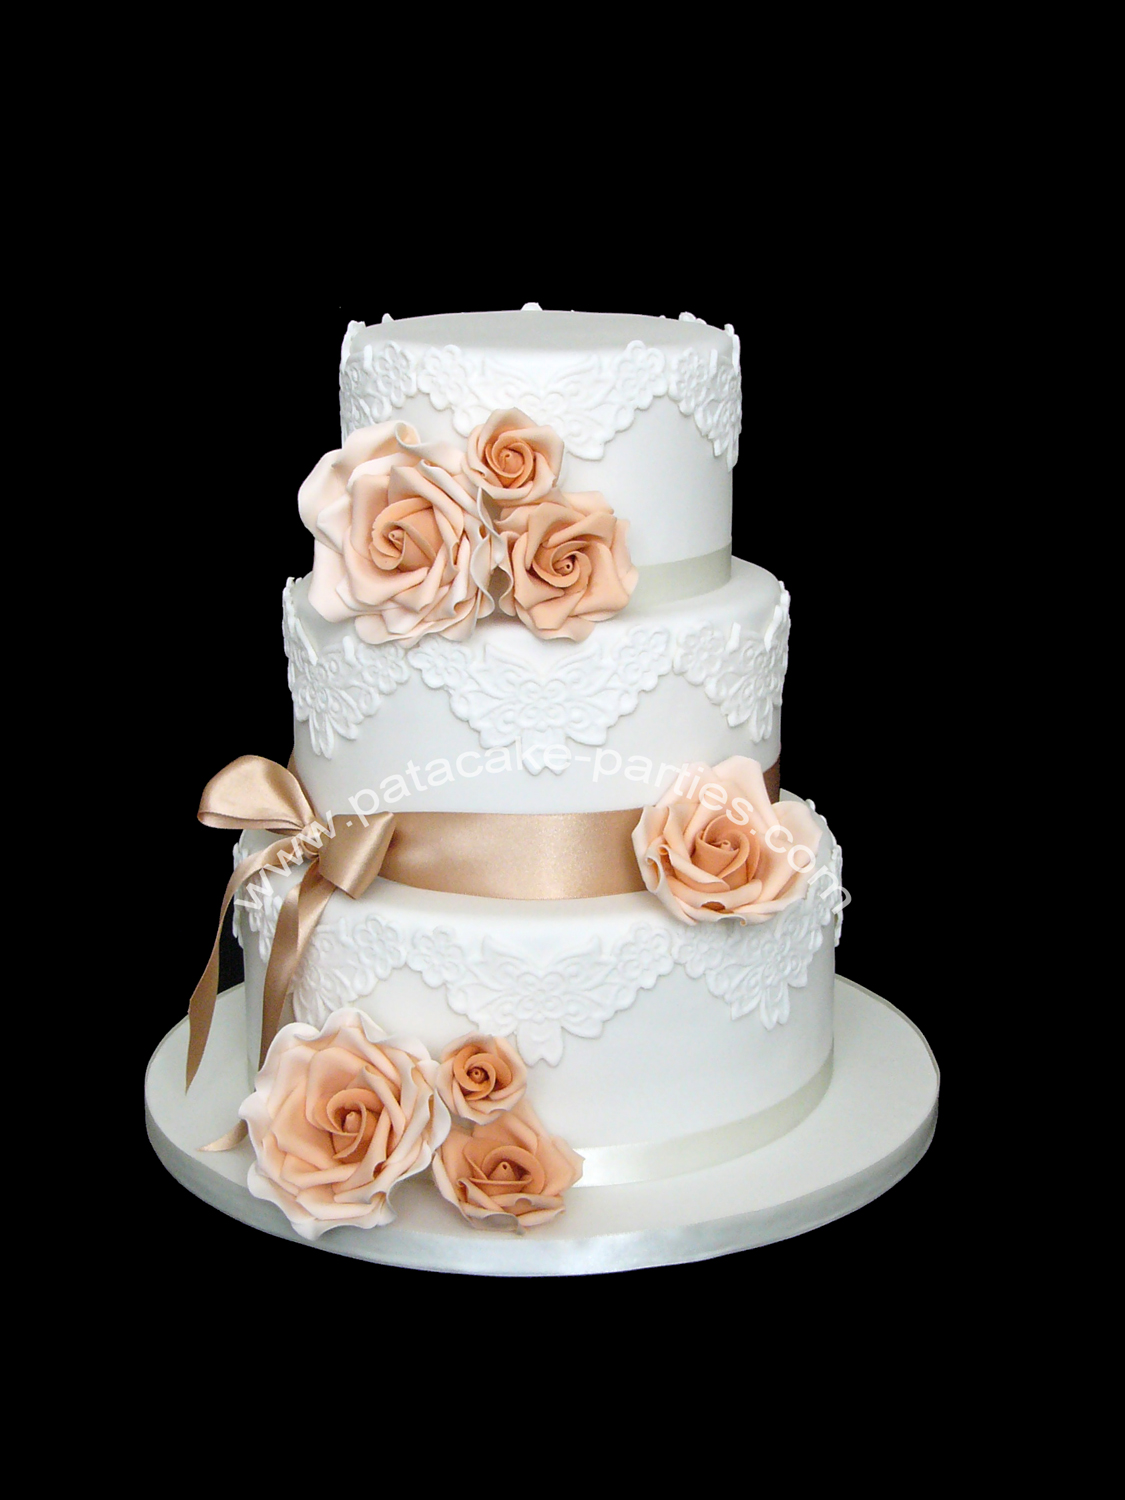 wedding cake background pat a cake august 2015 21774